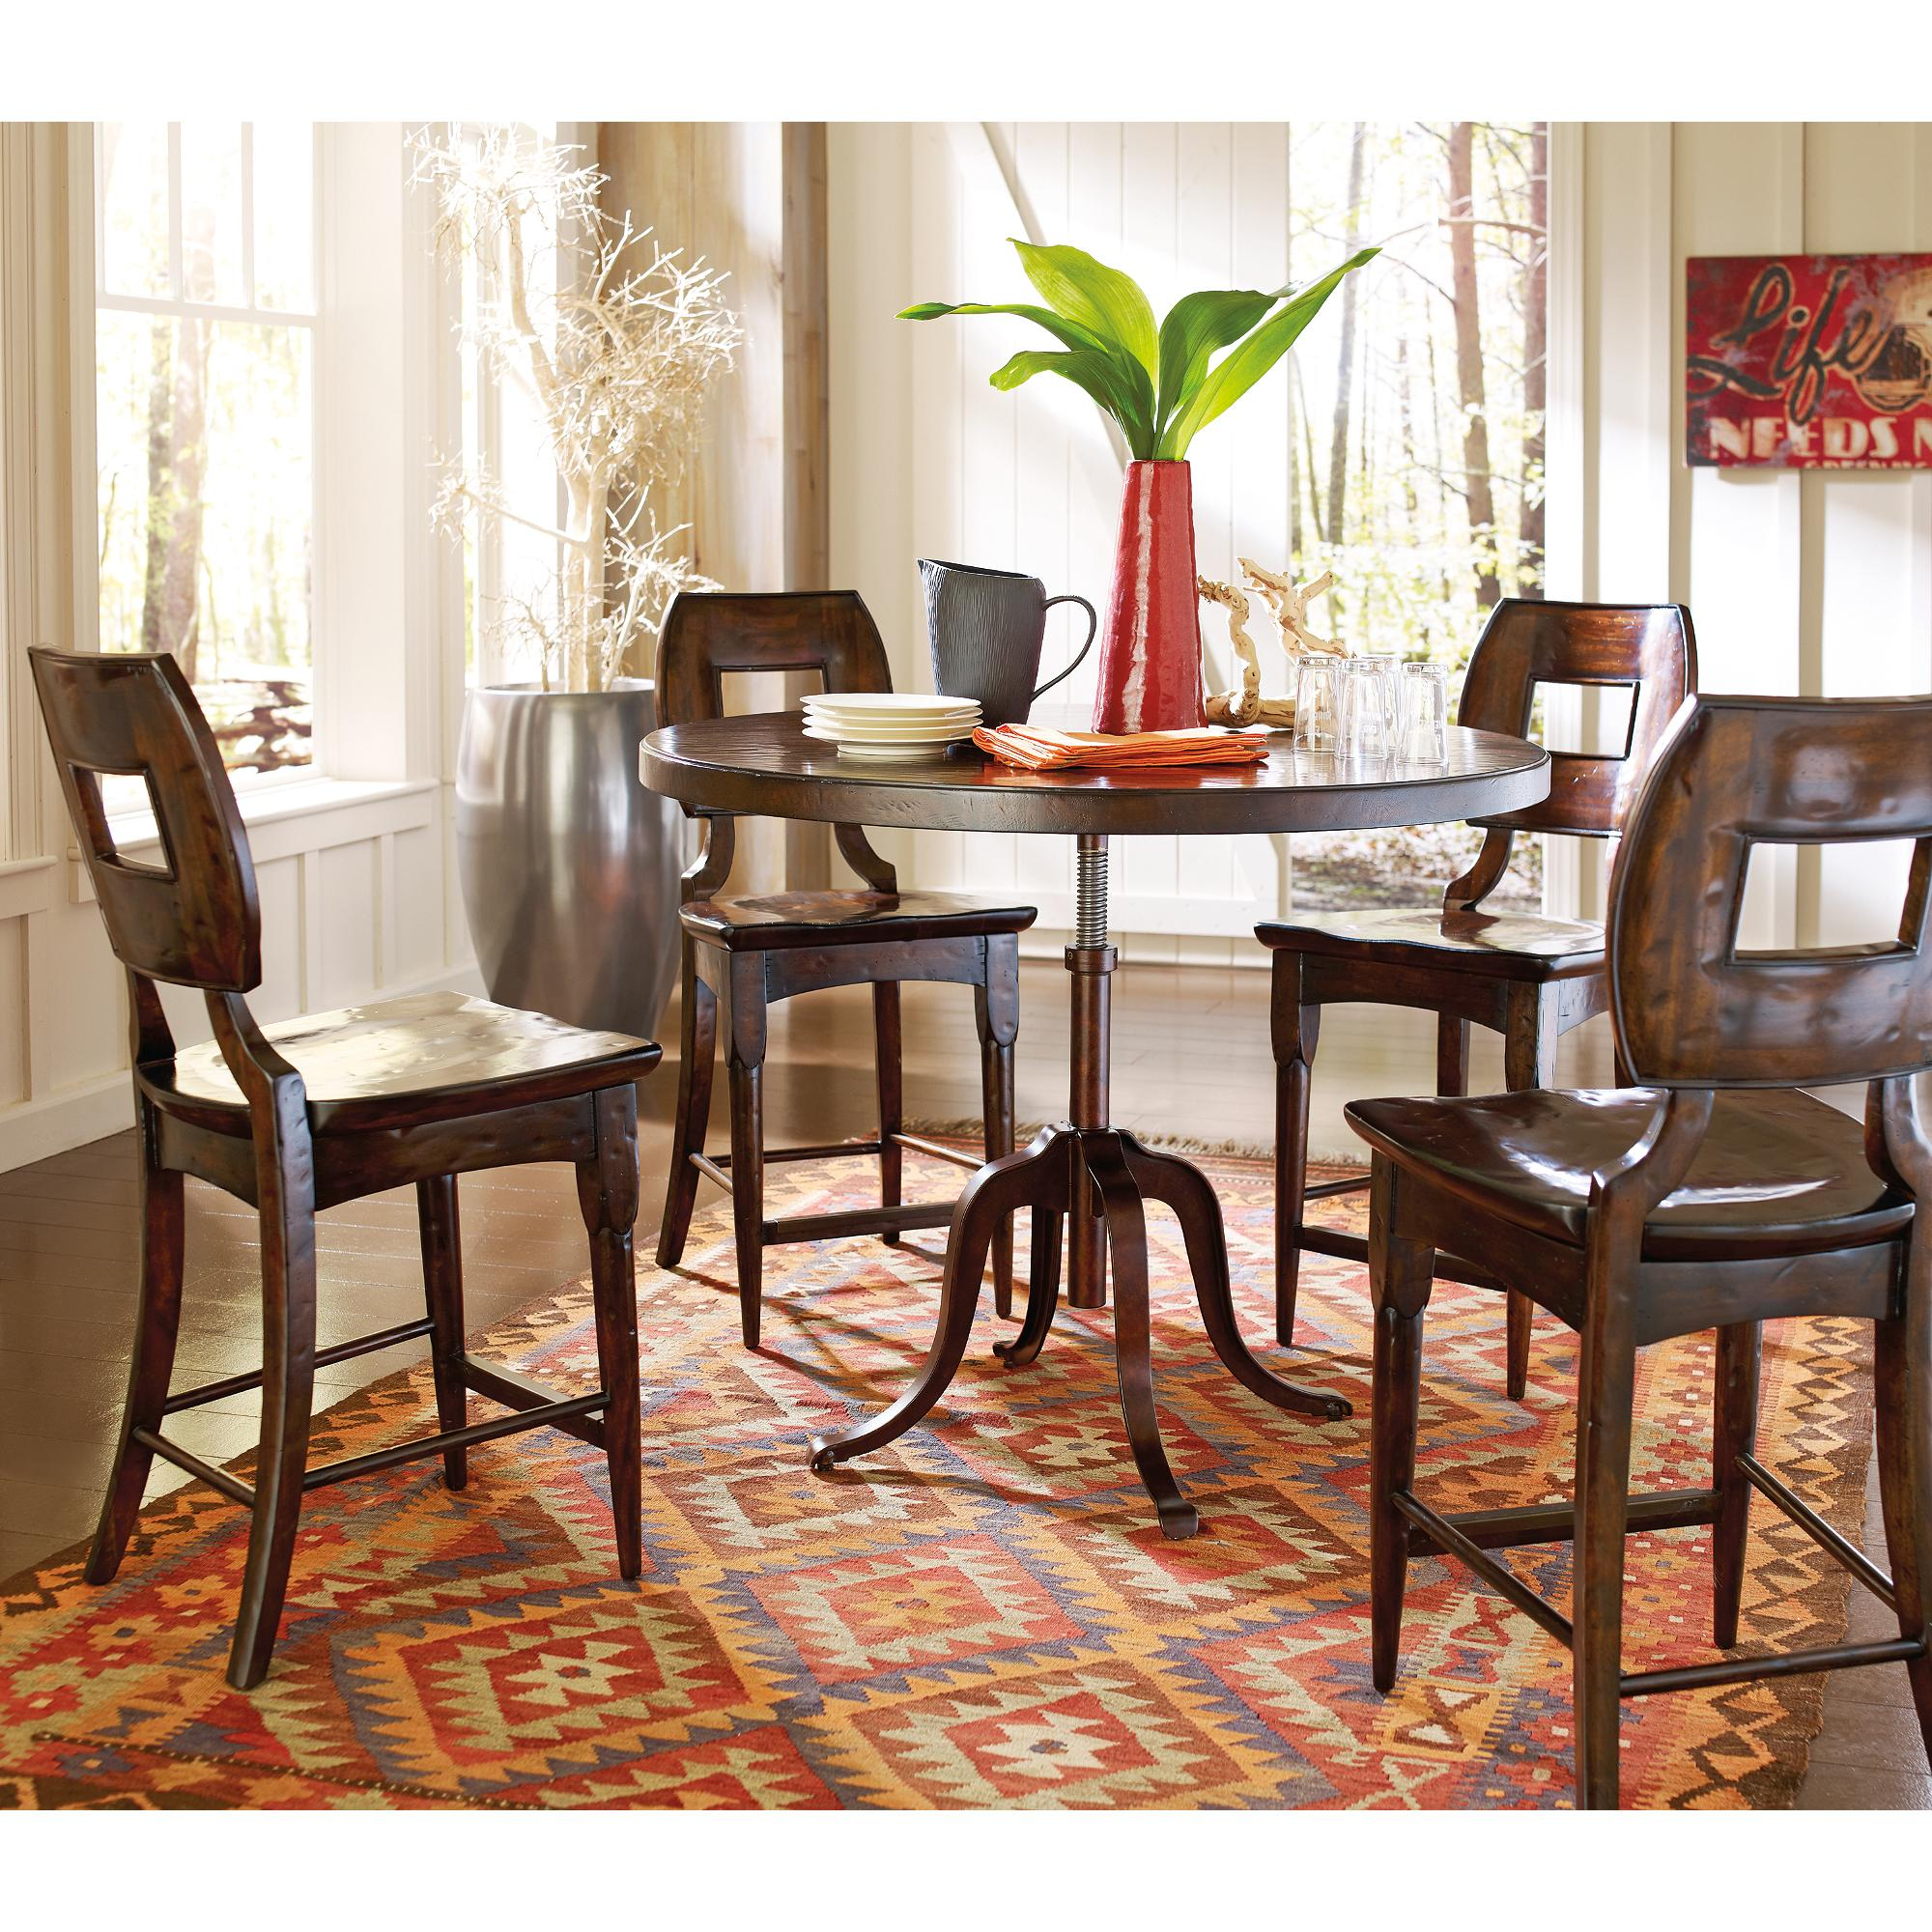 Stanley Furniture The Classic Portfolio Artisan 5Pc Adjustable Height Table & Counter Stools - Item Number: 135-11-230+130+4x72